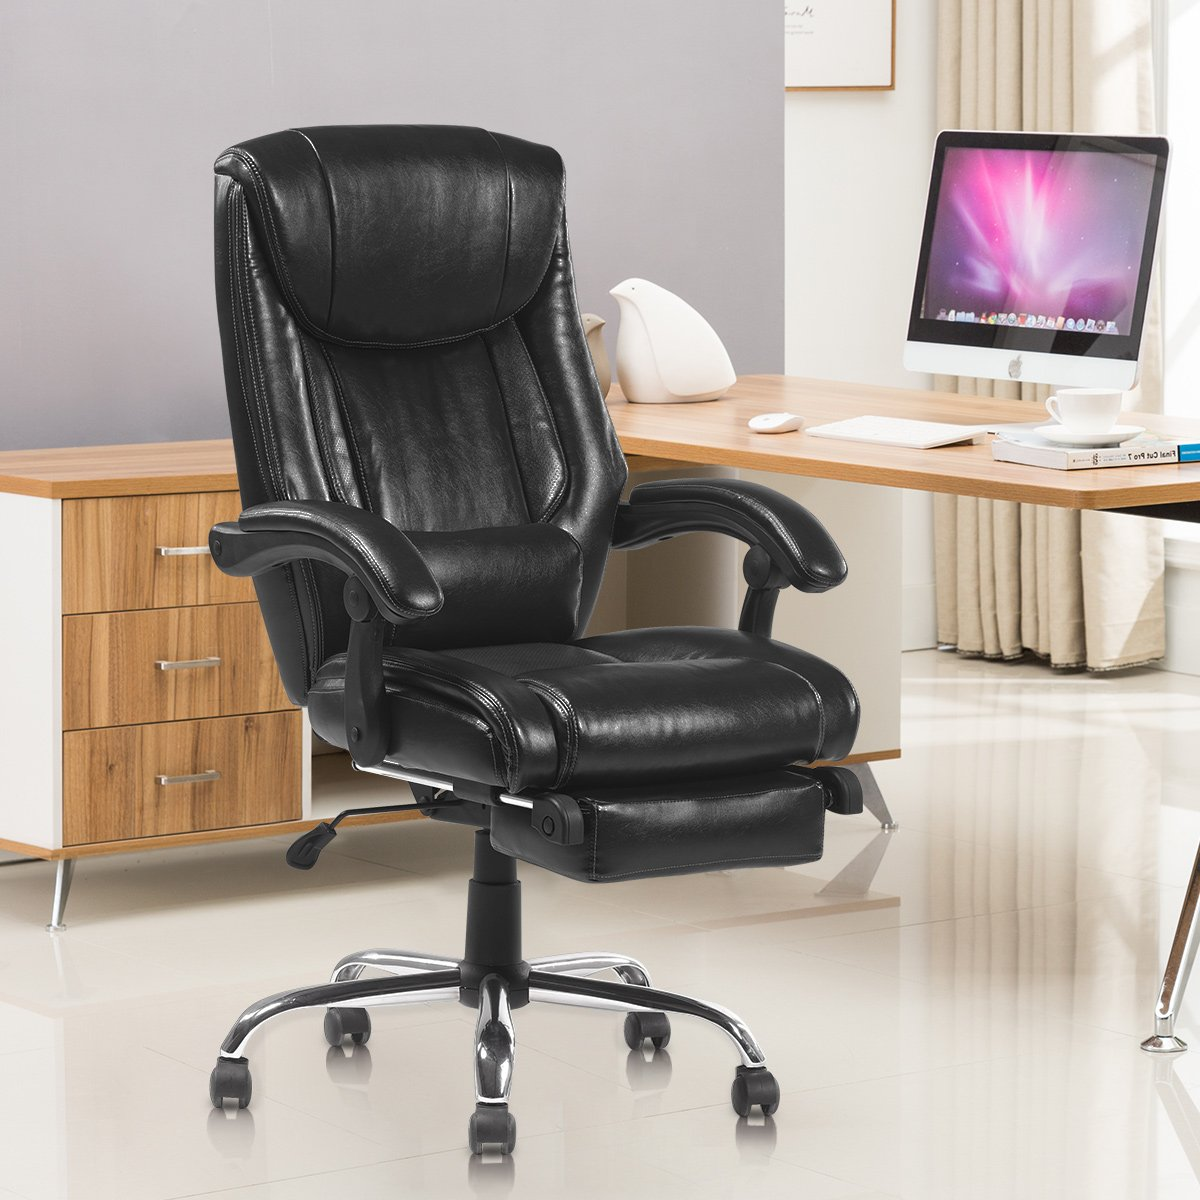 YAMASORO Reclining Office Chair High Back ,Ergonomic Design Computer Napping  Chair Leather With Footrest Thick Padding ...